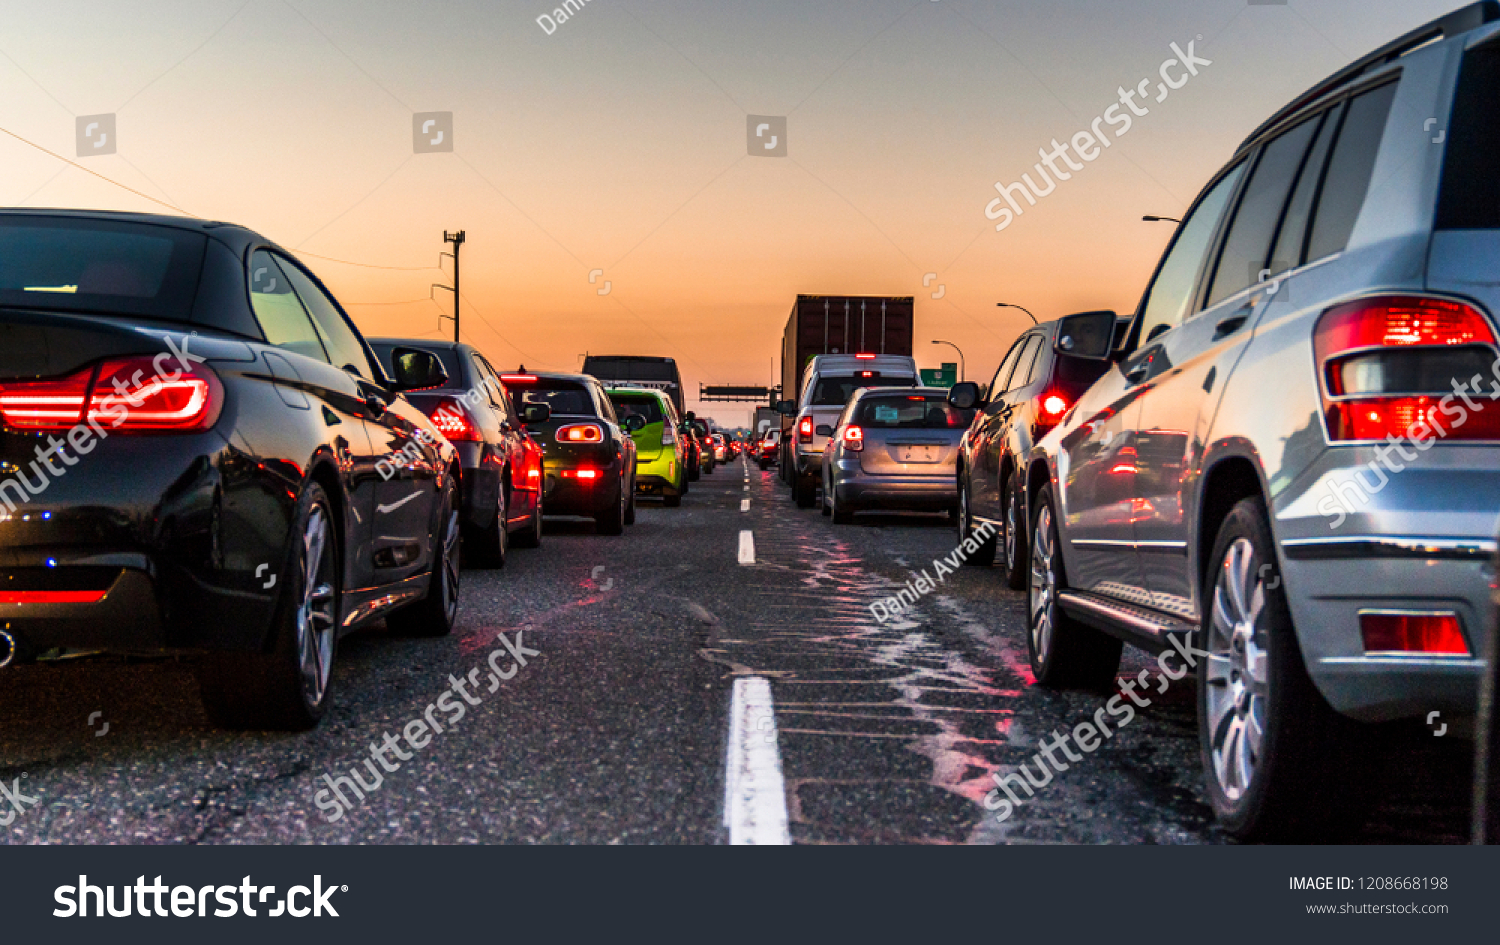 Vancouver, British Columbia - Canada. Traffic jam on a busy highway at rush hour. Cars in line, bumper to bumper, stuck in traffic at dusk on a clear sky night. #1208668198